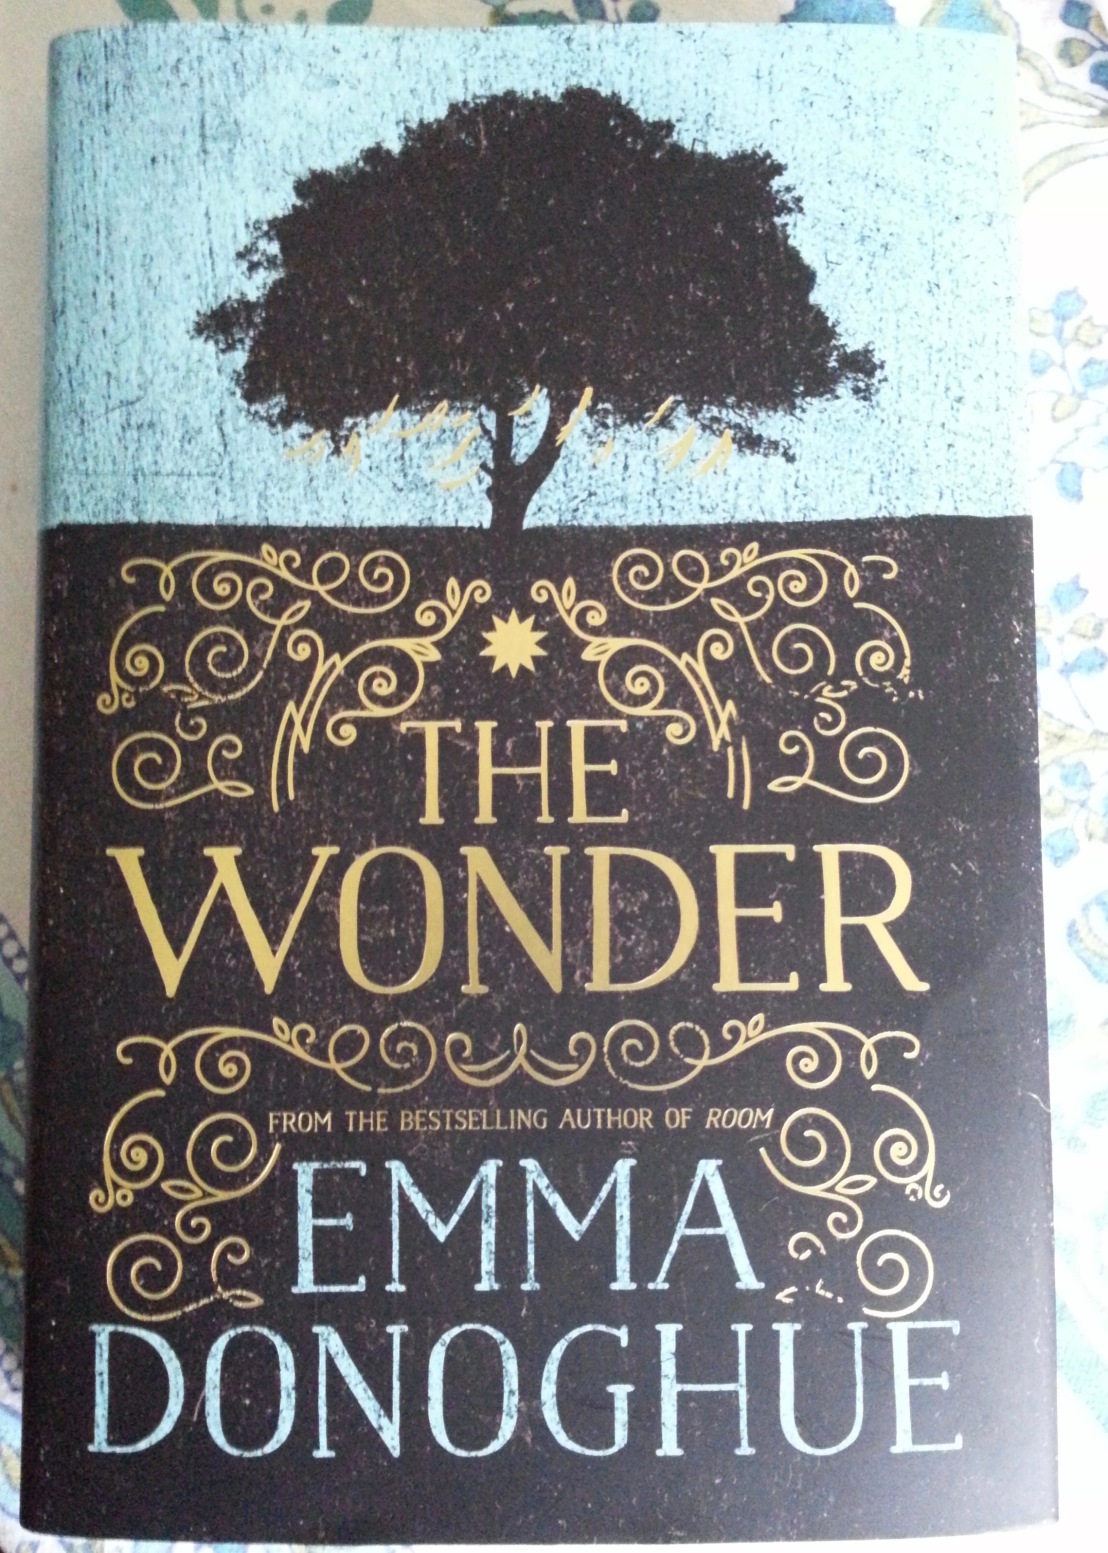 Emma Donoghue's — The Wonder *****